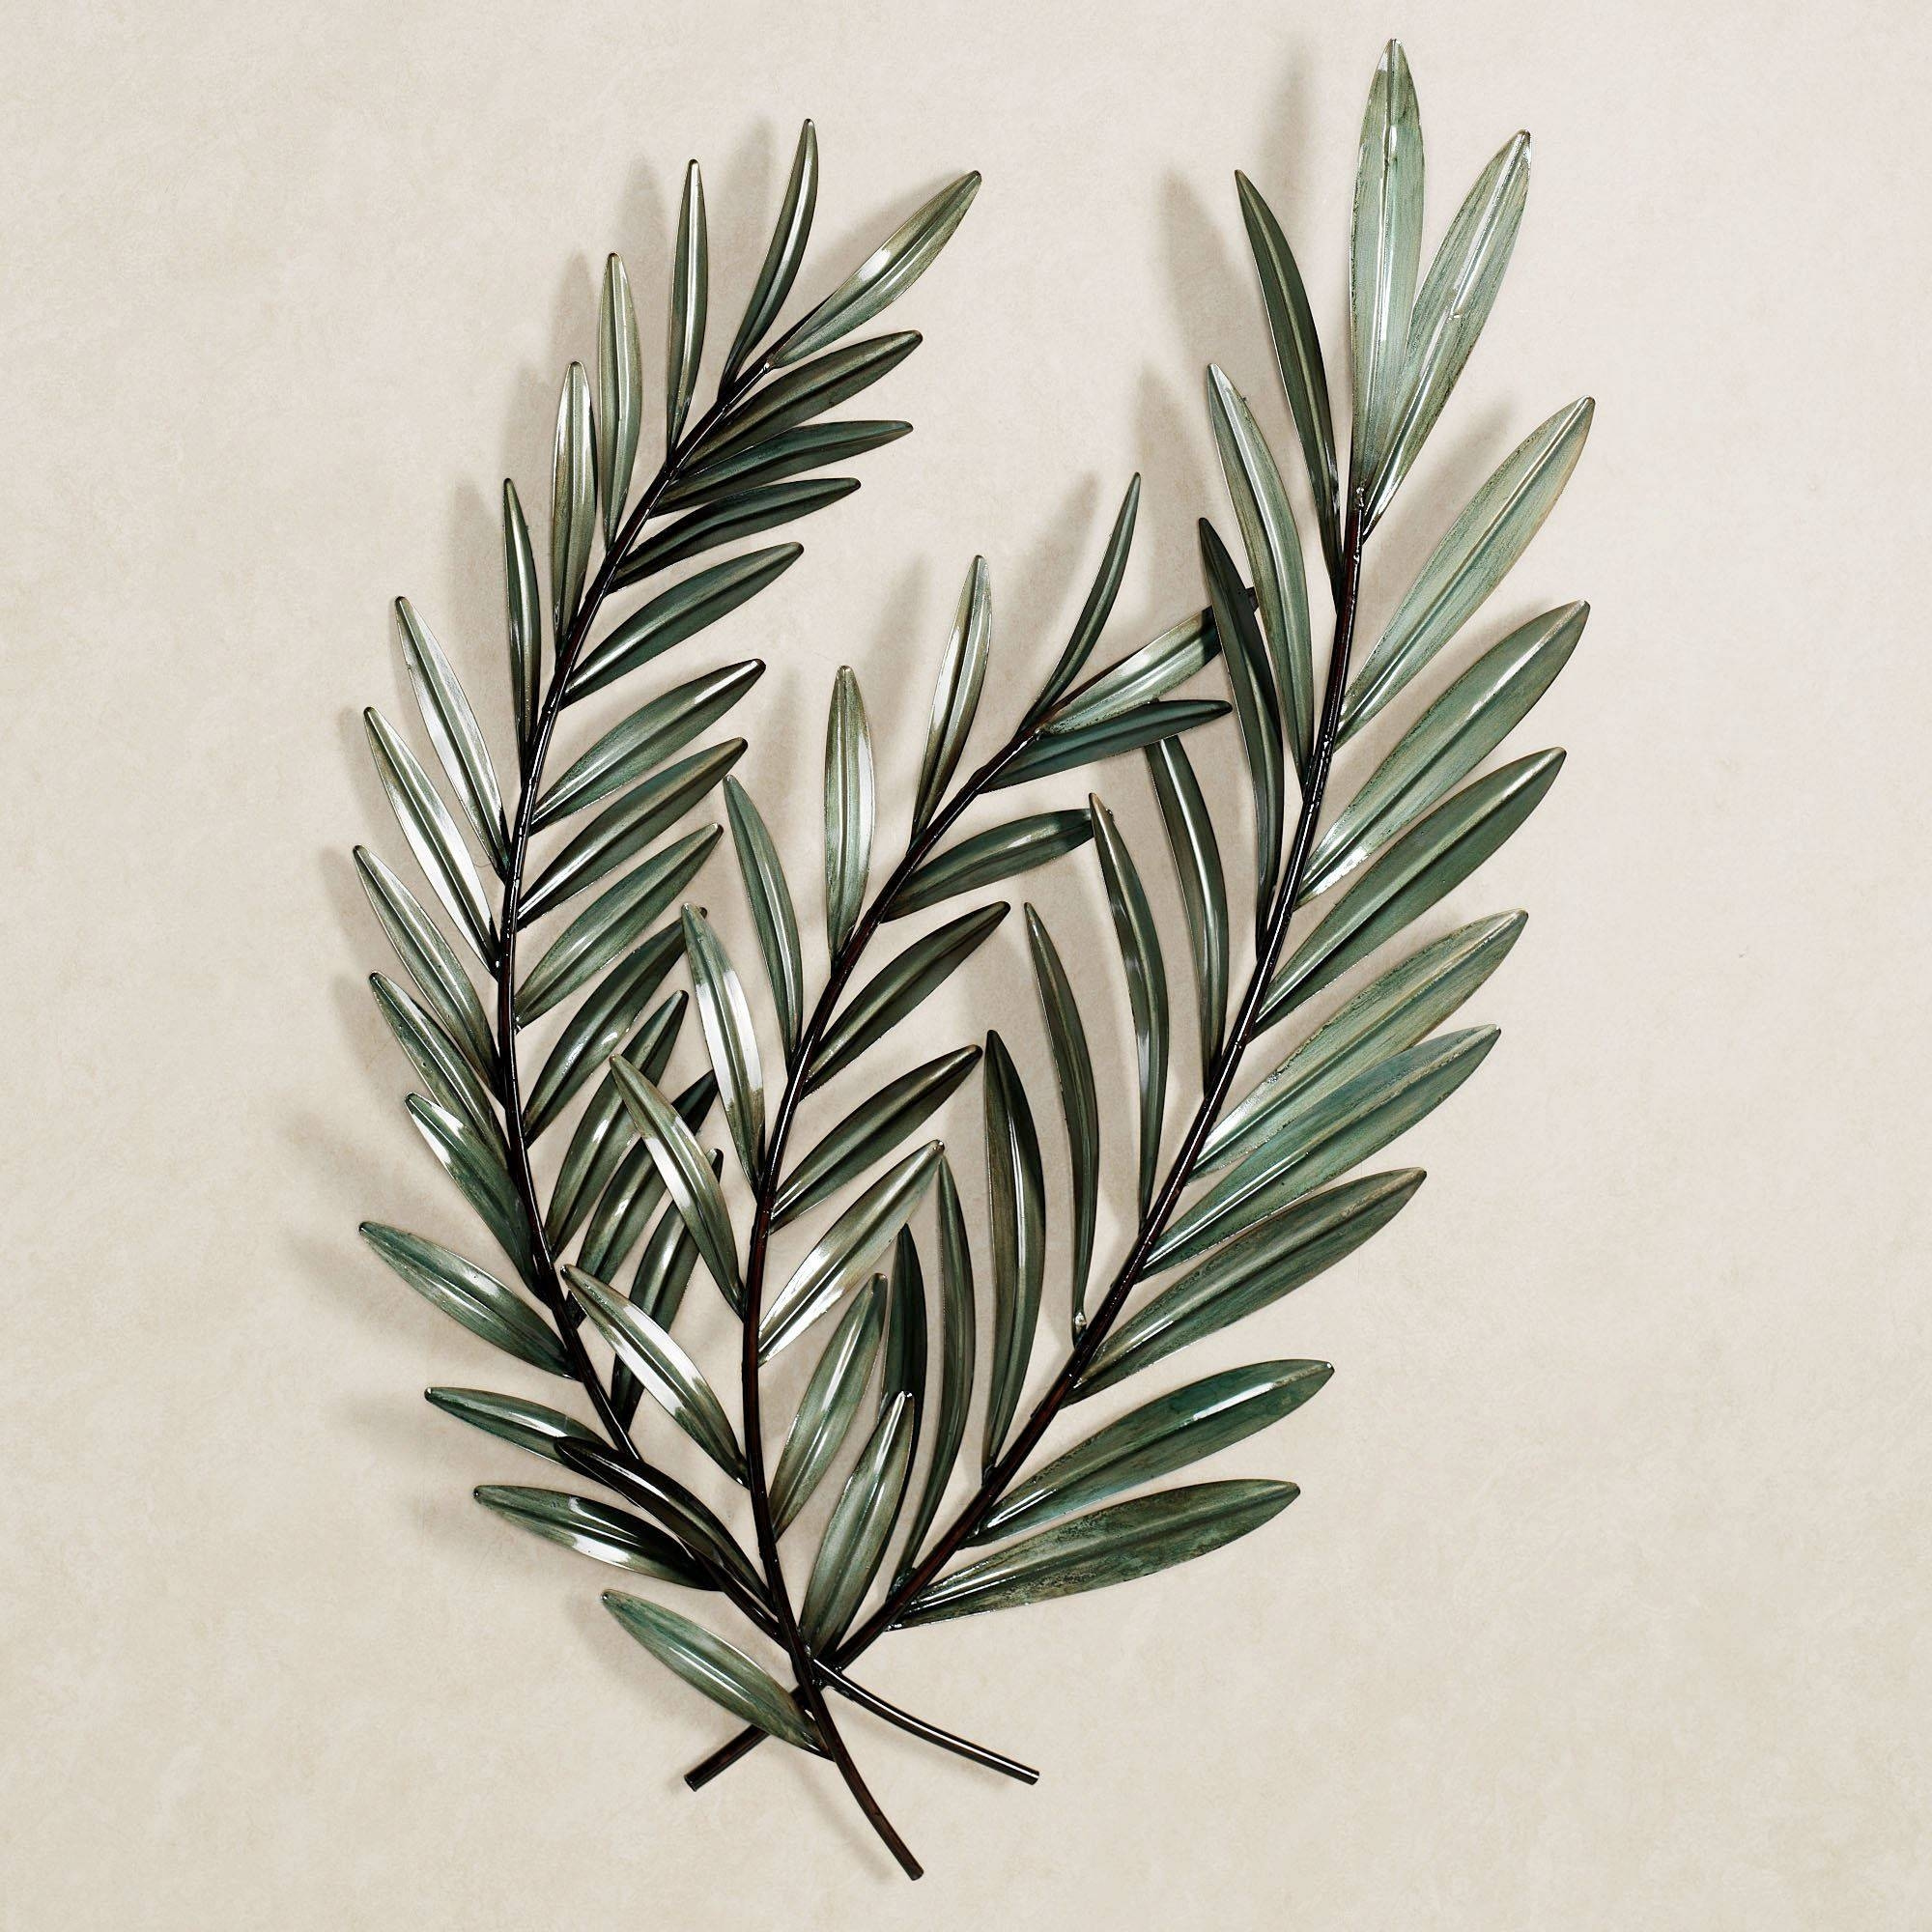 Laurella Leaf Metal Wall Art Regarding Most Recent Palm Leaf Wall Decor (View 13 of 25)